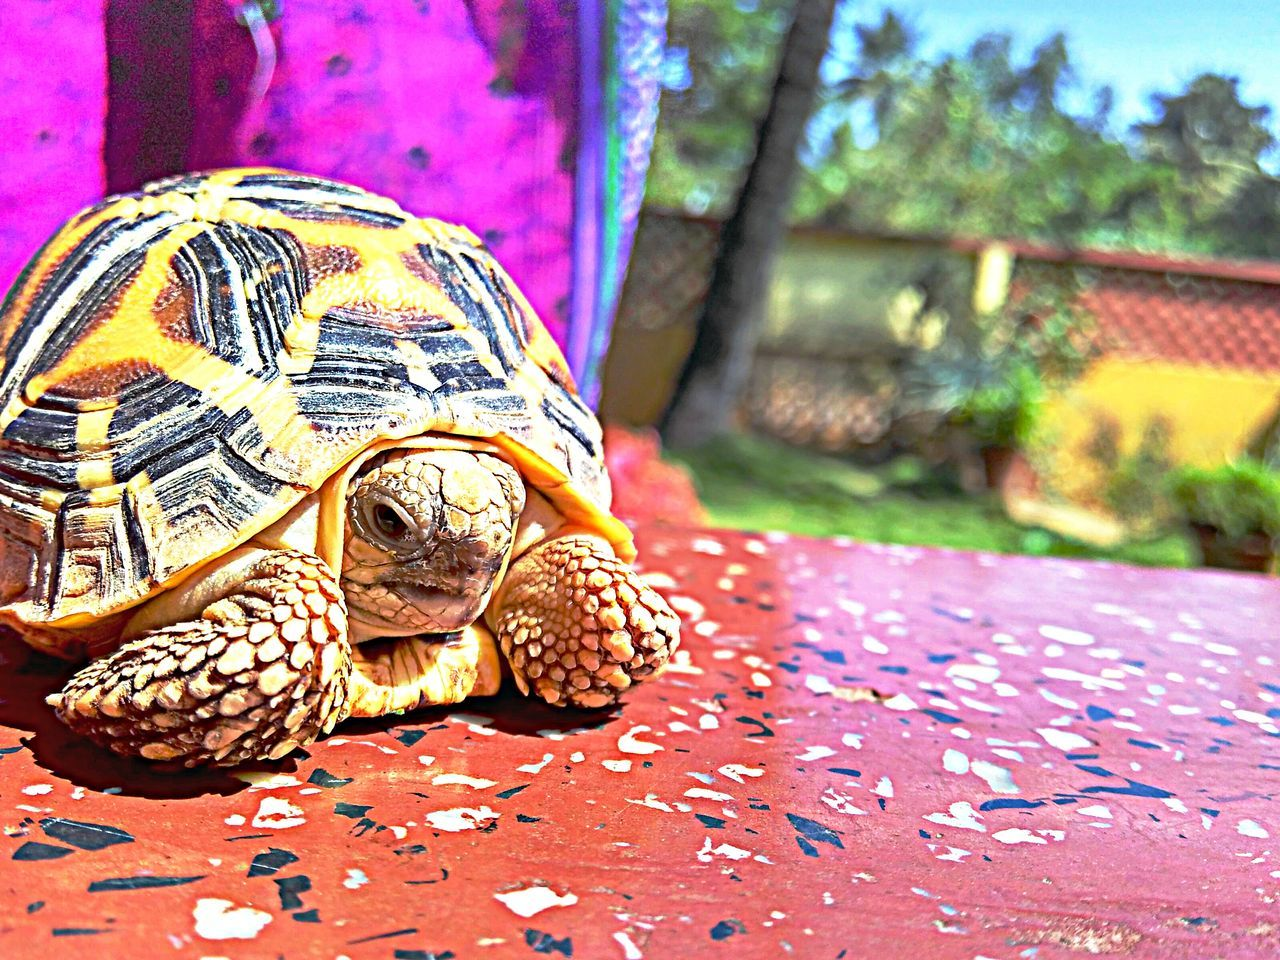 animal shell, one animal, tortoise, animal themes, reptile, animals in the wild, focus on foreground, turtle, close-up, day, tortoise shell, no people, animal wildlife, outdoors, nature